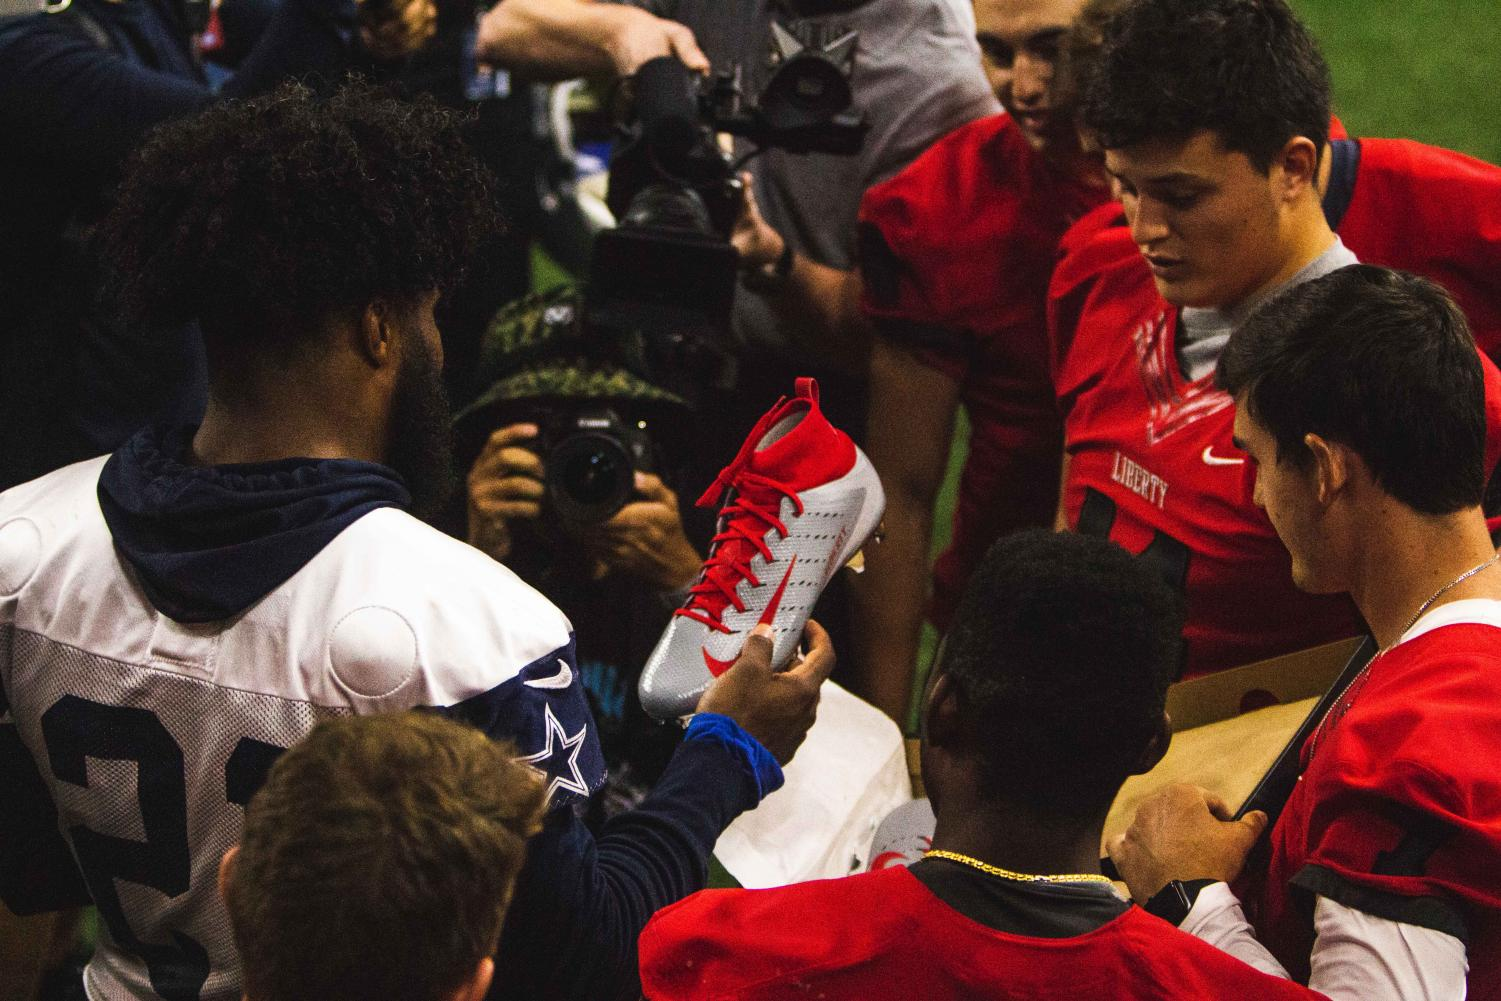 With+local+media+documenting+the+moment%2C+Cowboys%27+running+back+Ezekiel+Elliott+checks+out+the+Liberty+Redhawks+custom+cleats+made+by+Nike.+The+Redhawks+received+the+opportunity+to+present+Elliott+the+cleats+after+winning+a+social+media+contest+and+earning+the+most+retweets.